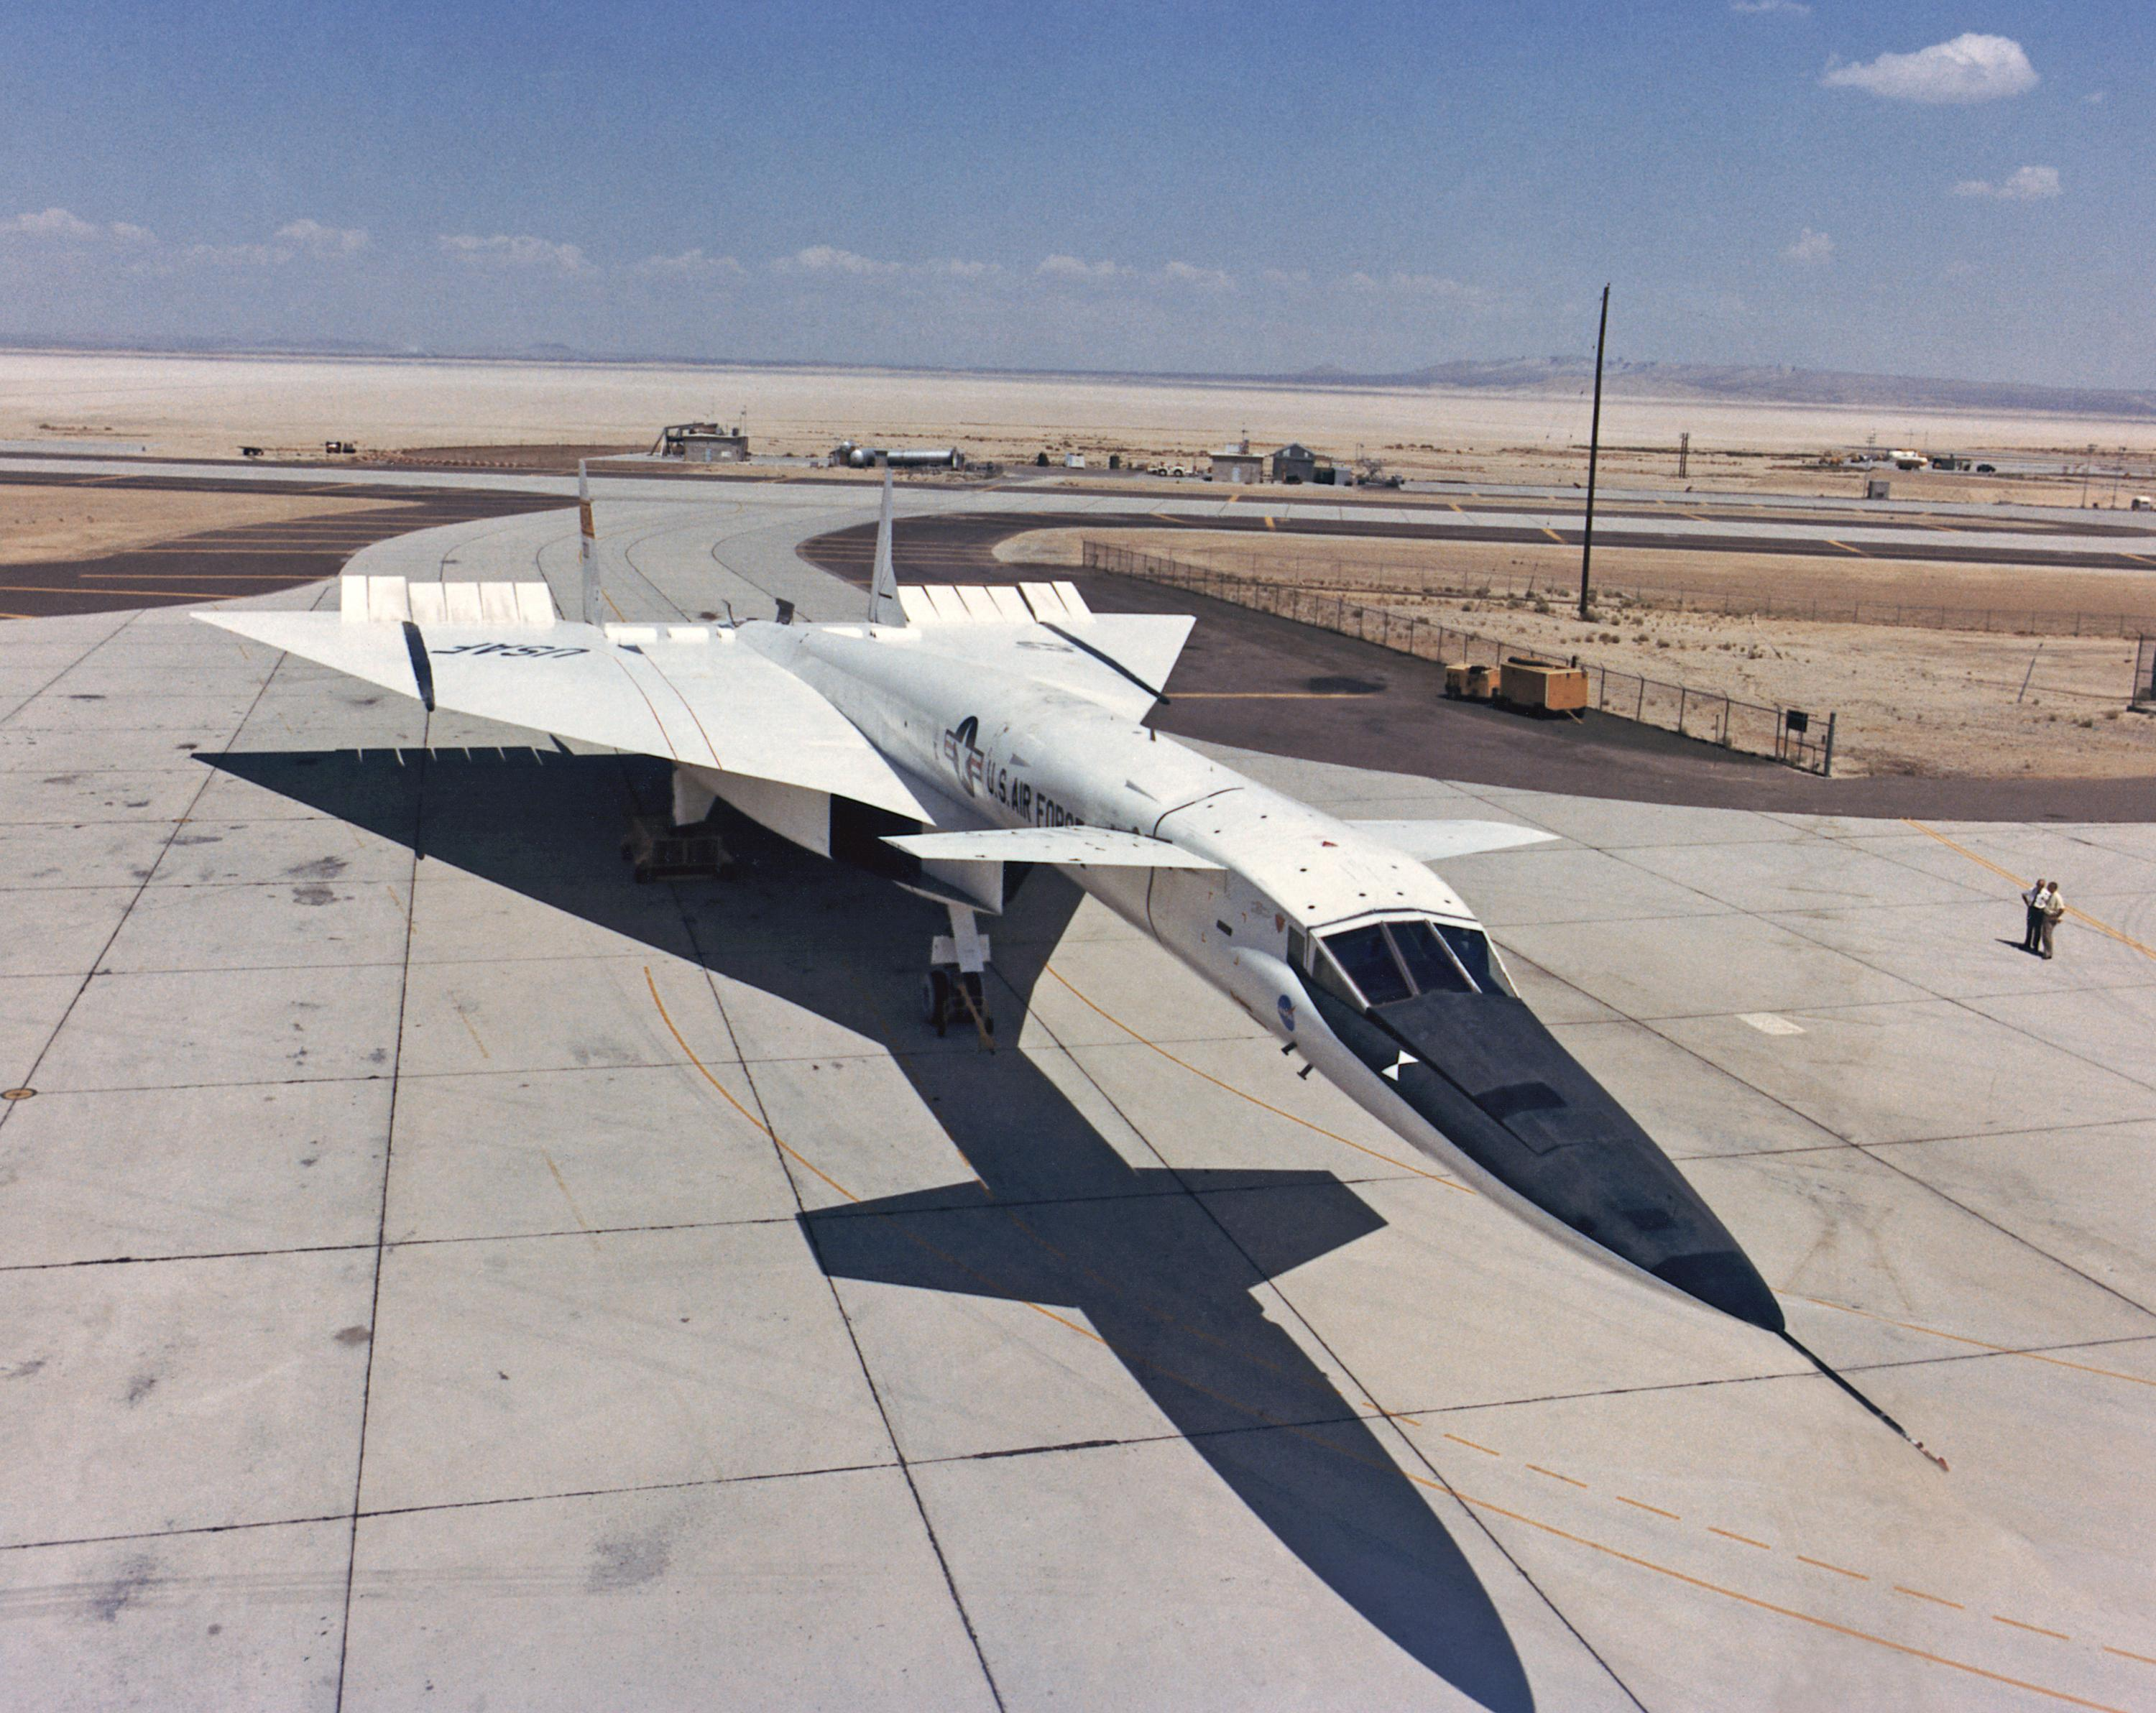 1967 nasa aircraft - photo #8